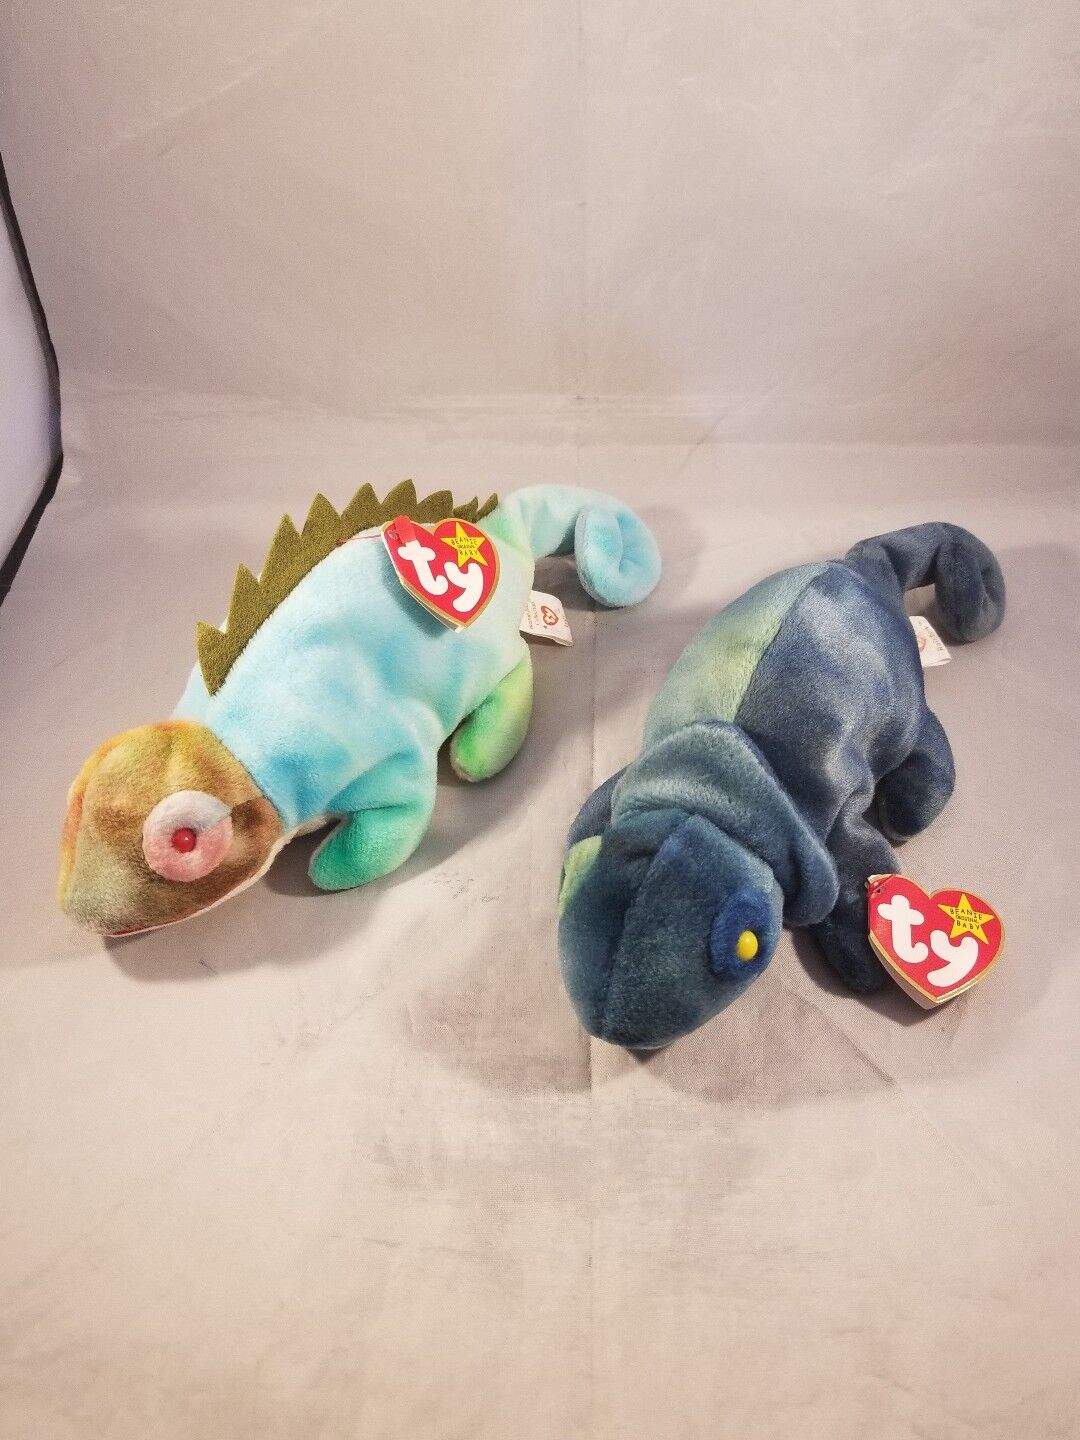 Rare Iggy and Rainbow beanie babies